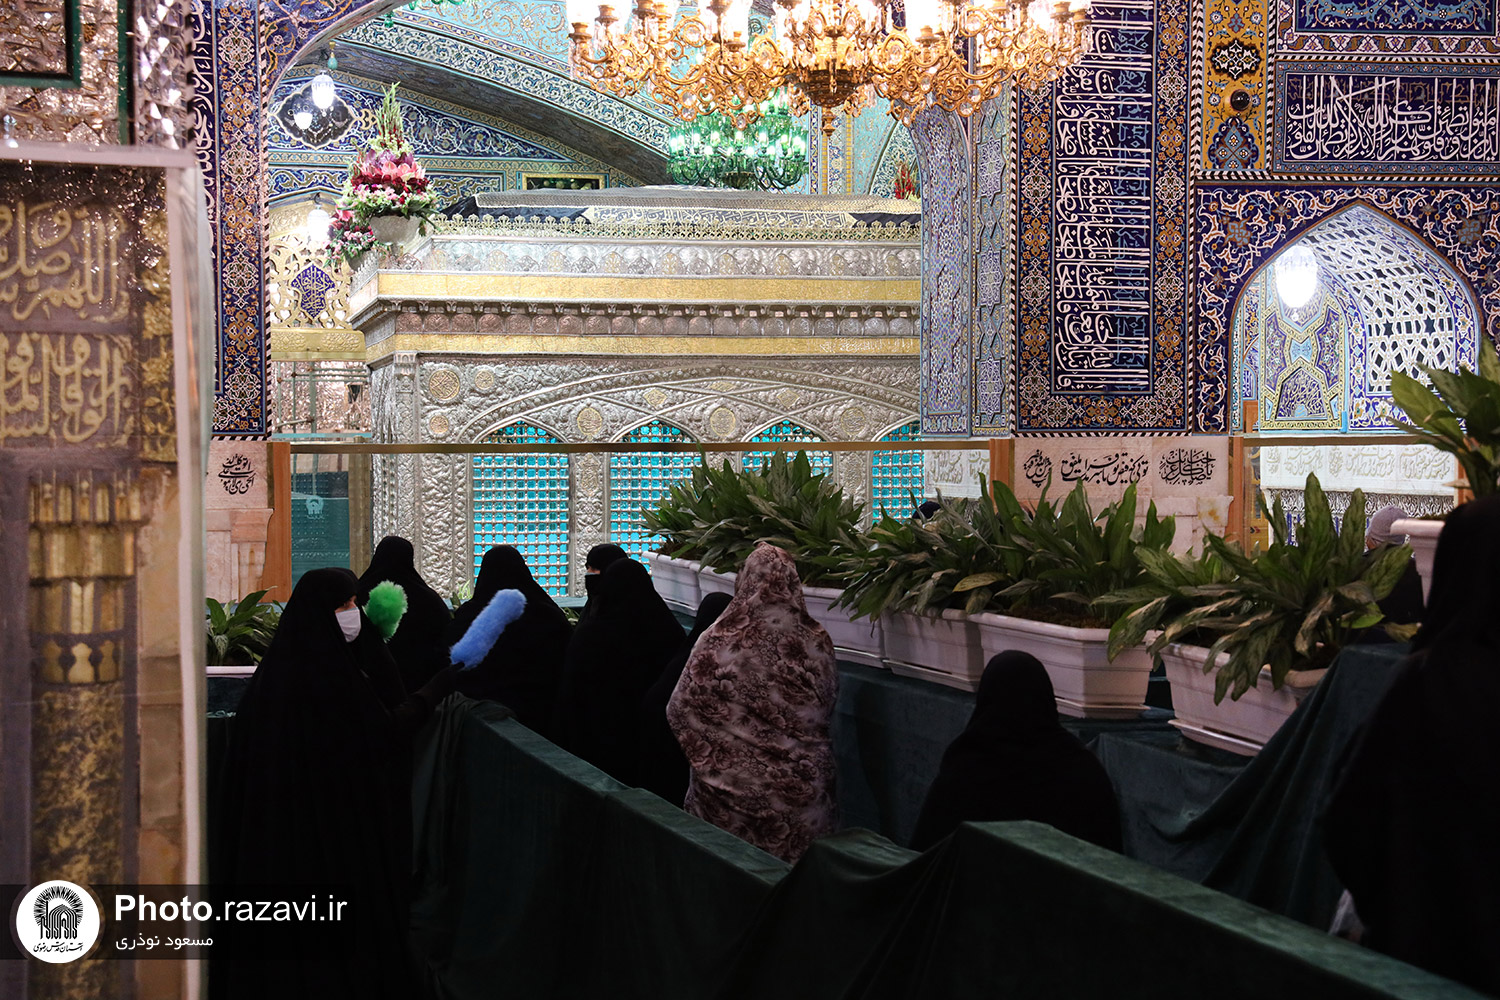 Photos: Imam Ridha's (AS) pilgrimage observing health protocols